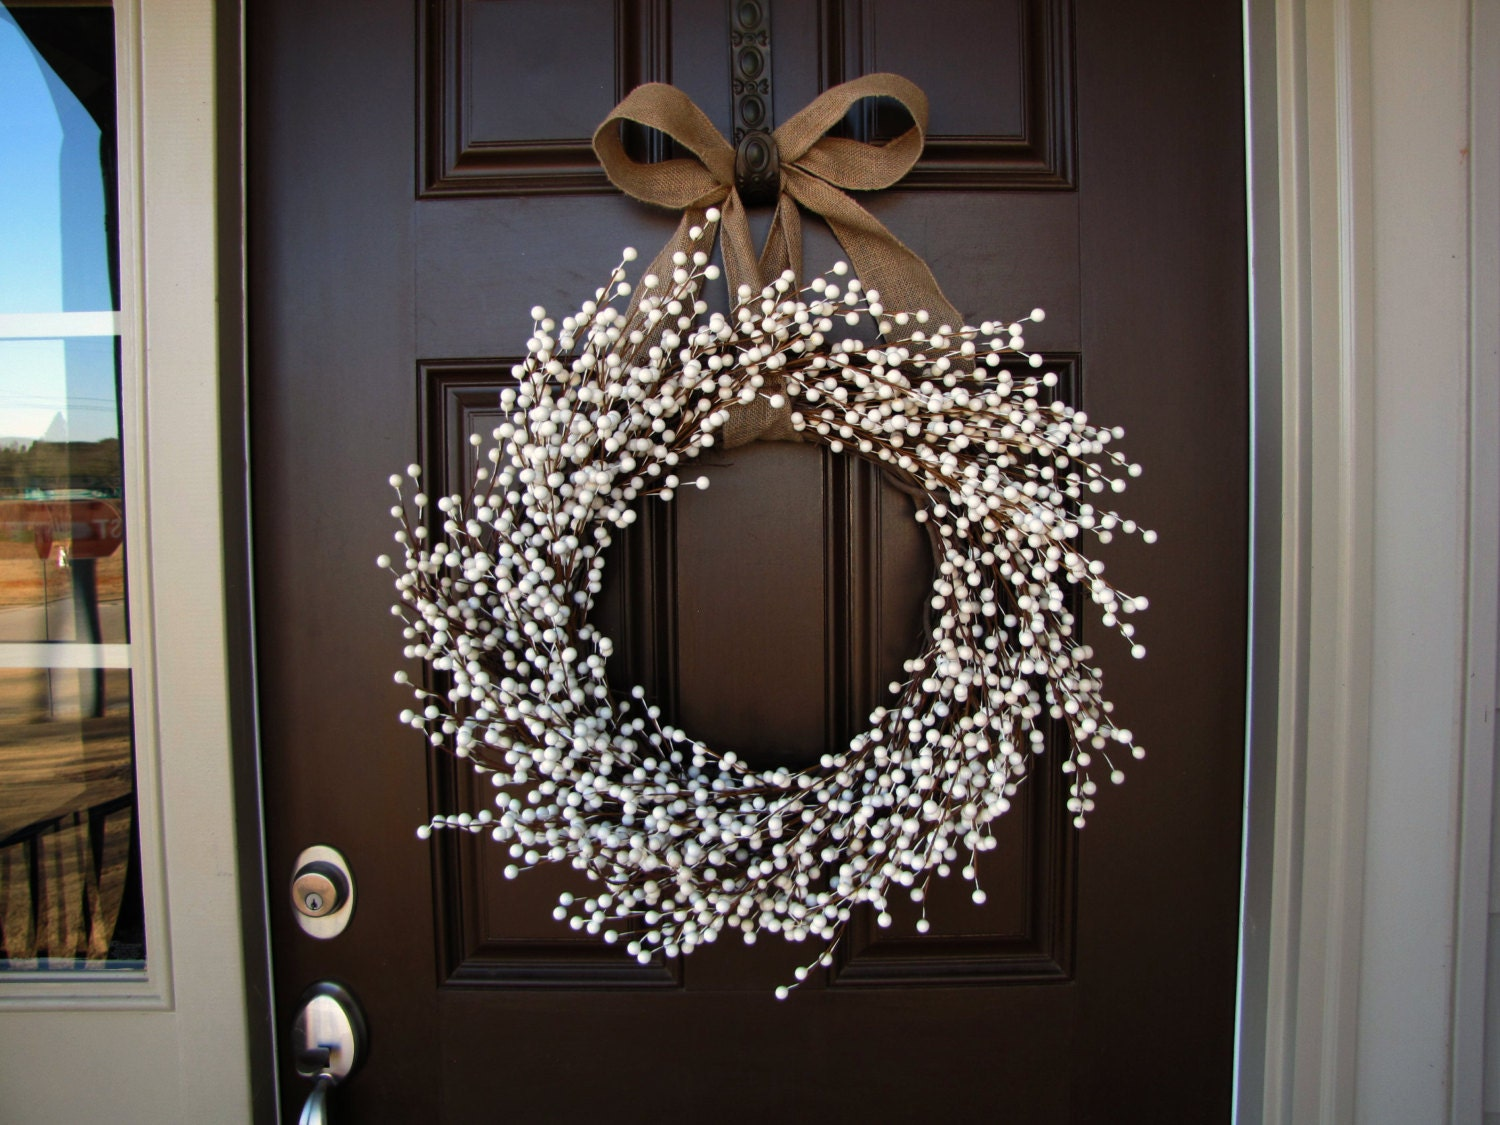 January Snowfall Winter White Berry Wreath Double Front Doors